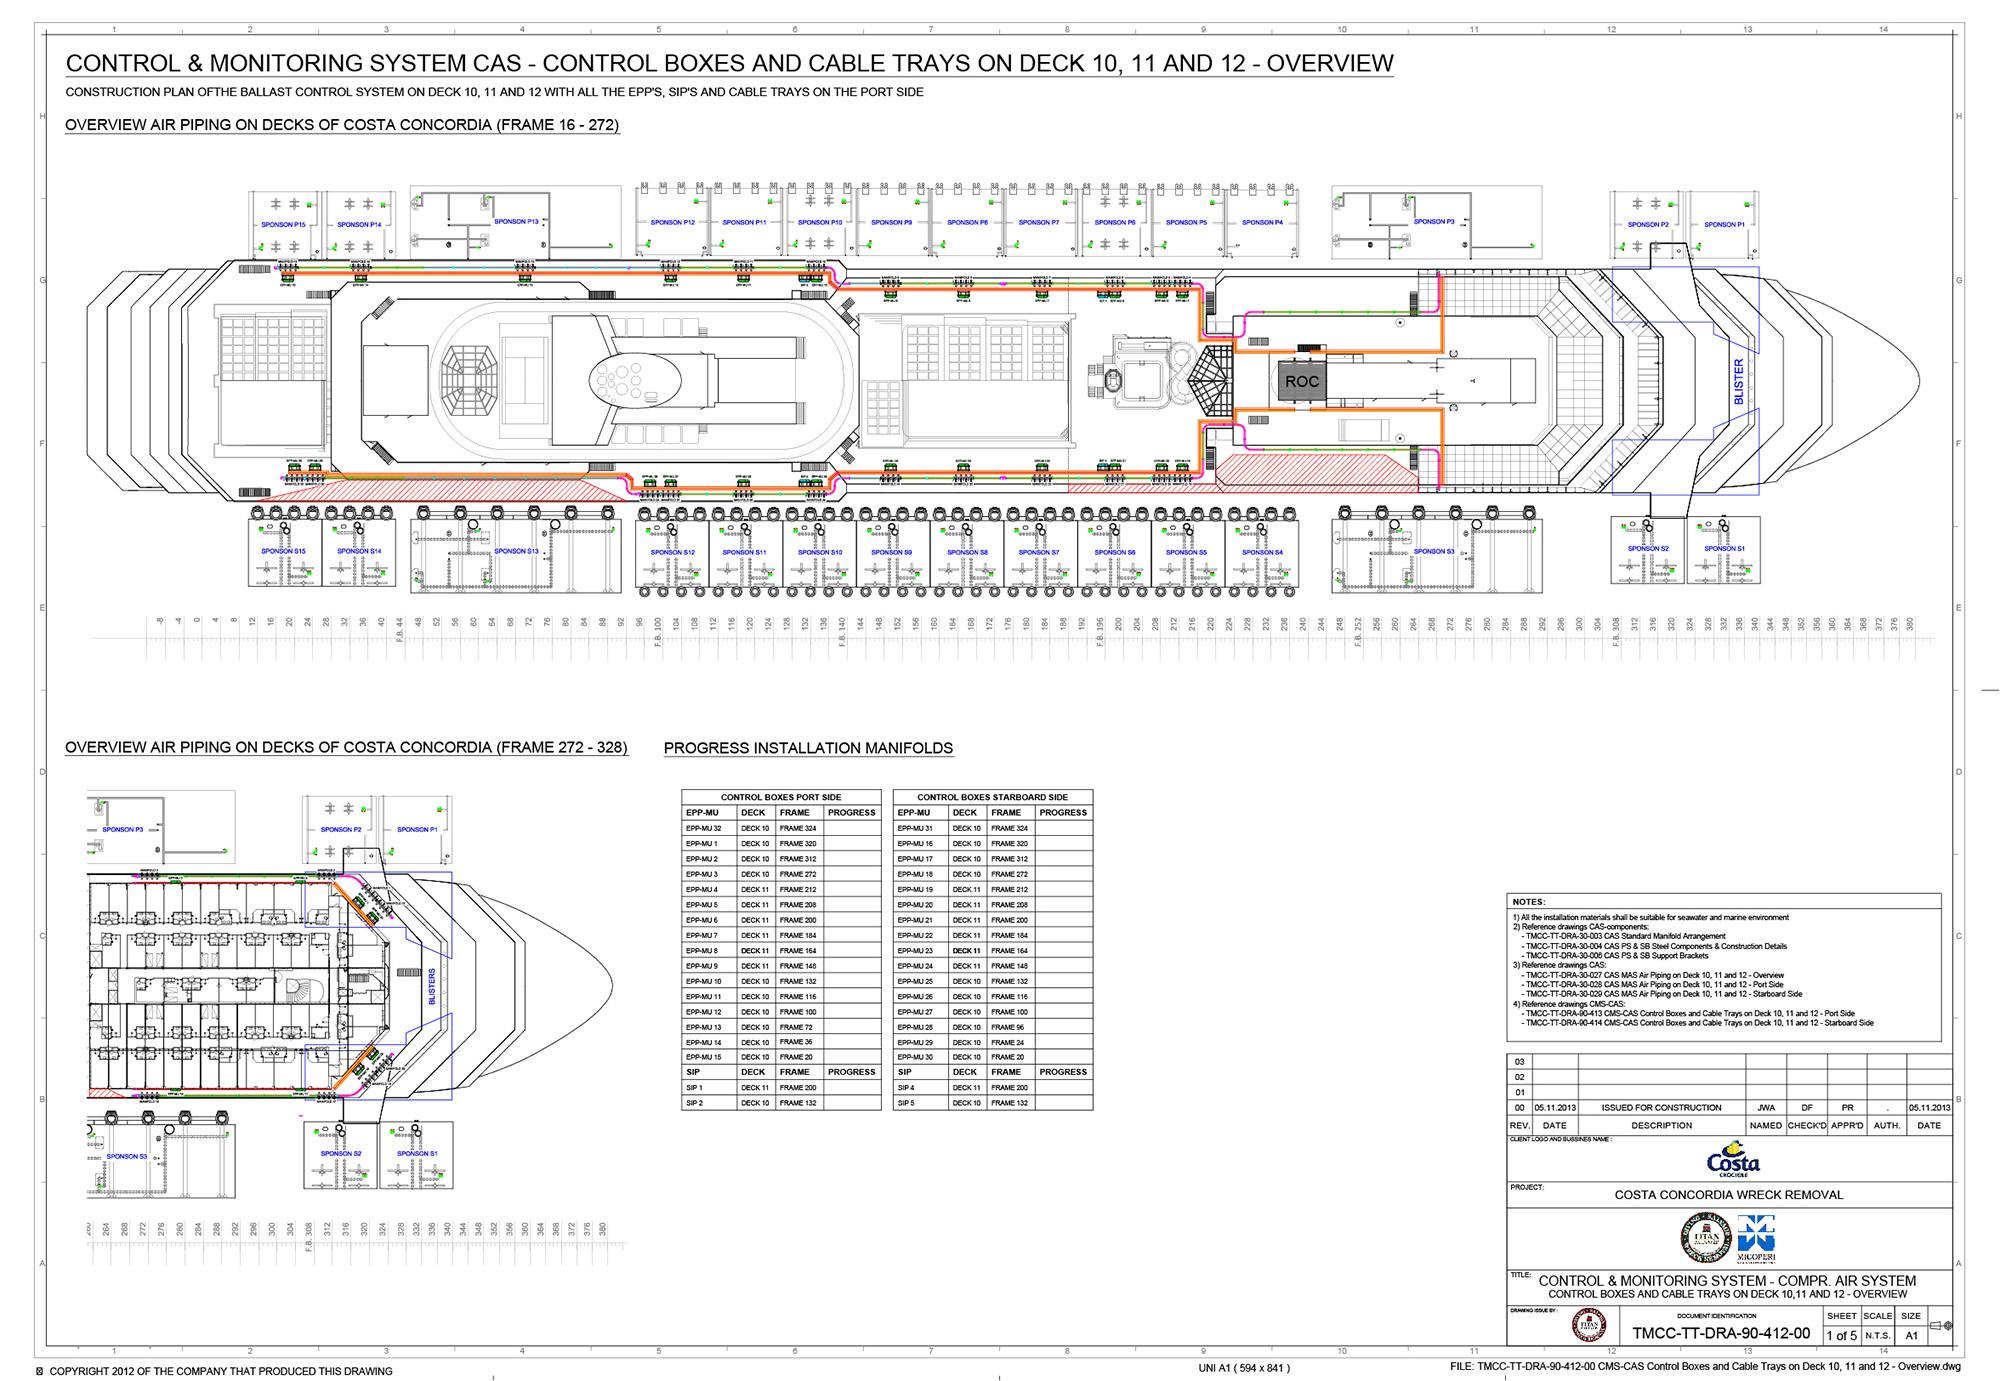 A system diagram of the sponsons and associated hardware I was responsible for installing on the COSTA CONCORDIA